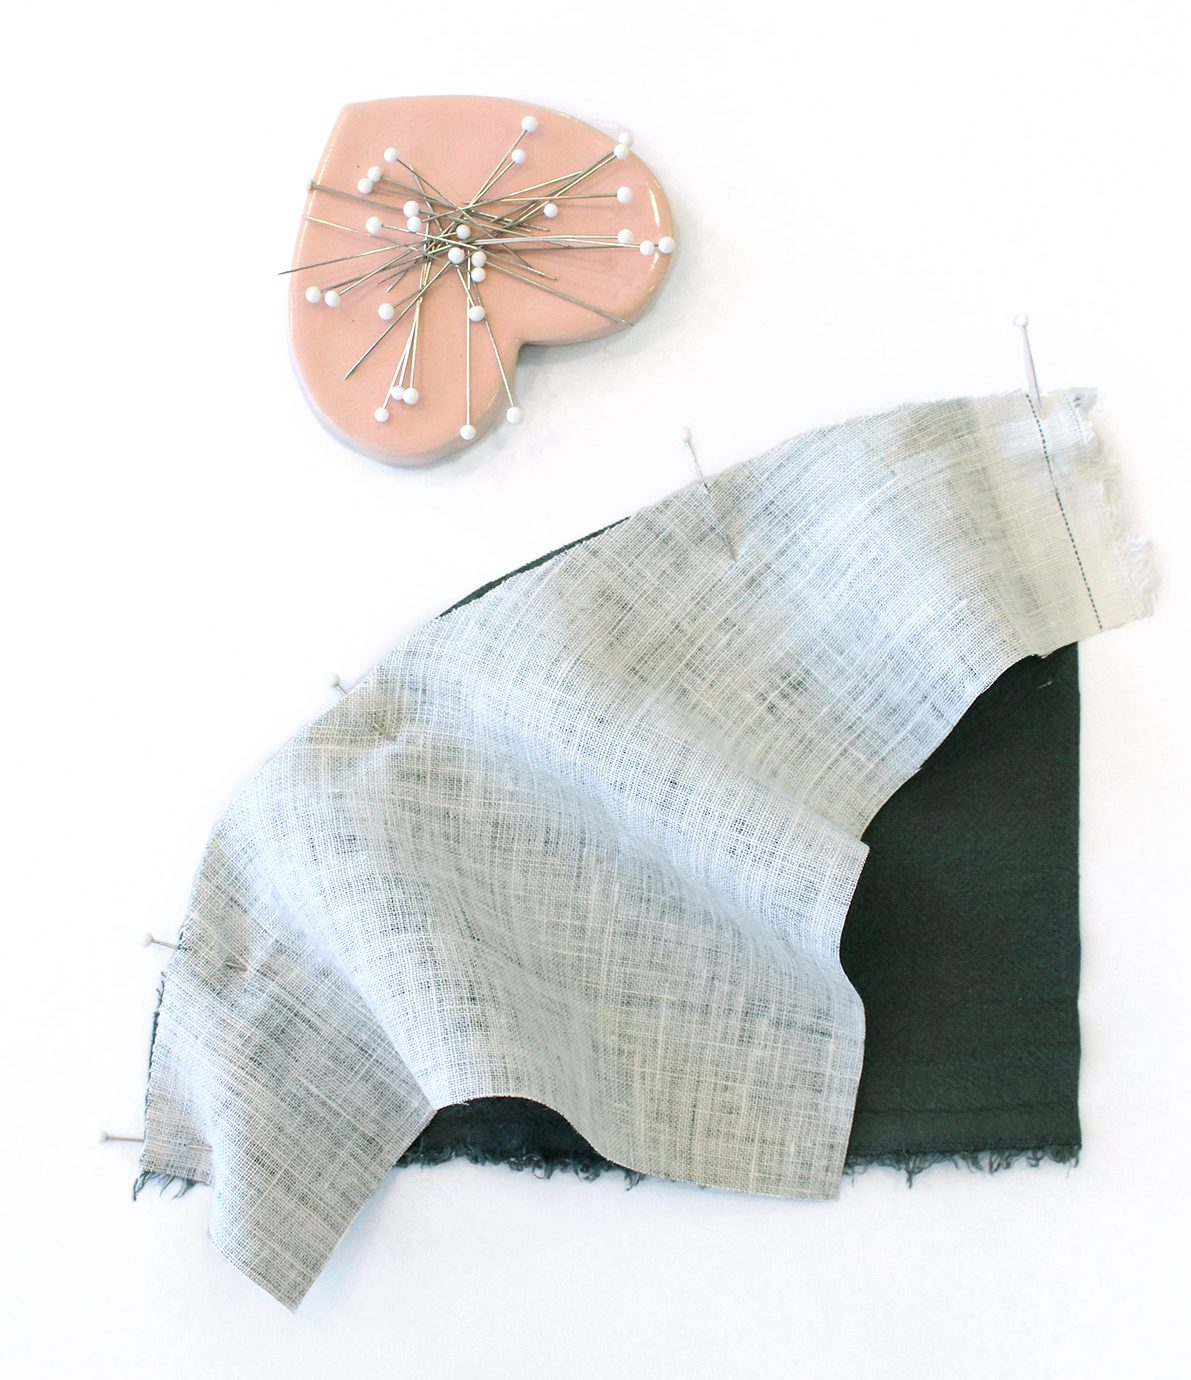 Megan Nielsen Patterns | Hovea Sewalong: Scrap Quilting | Curved Seams - Pin Your Curved Pieces Together